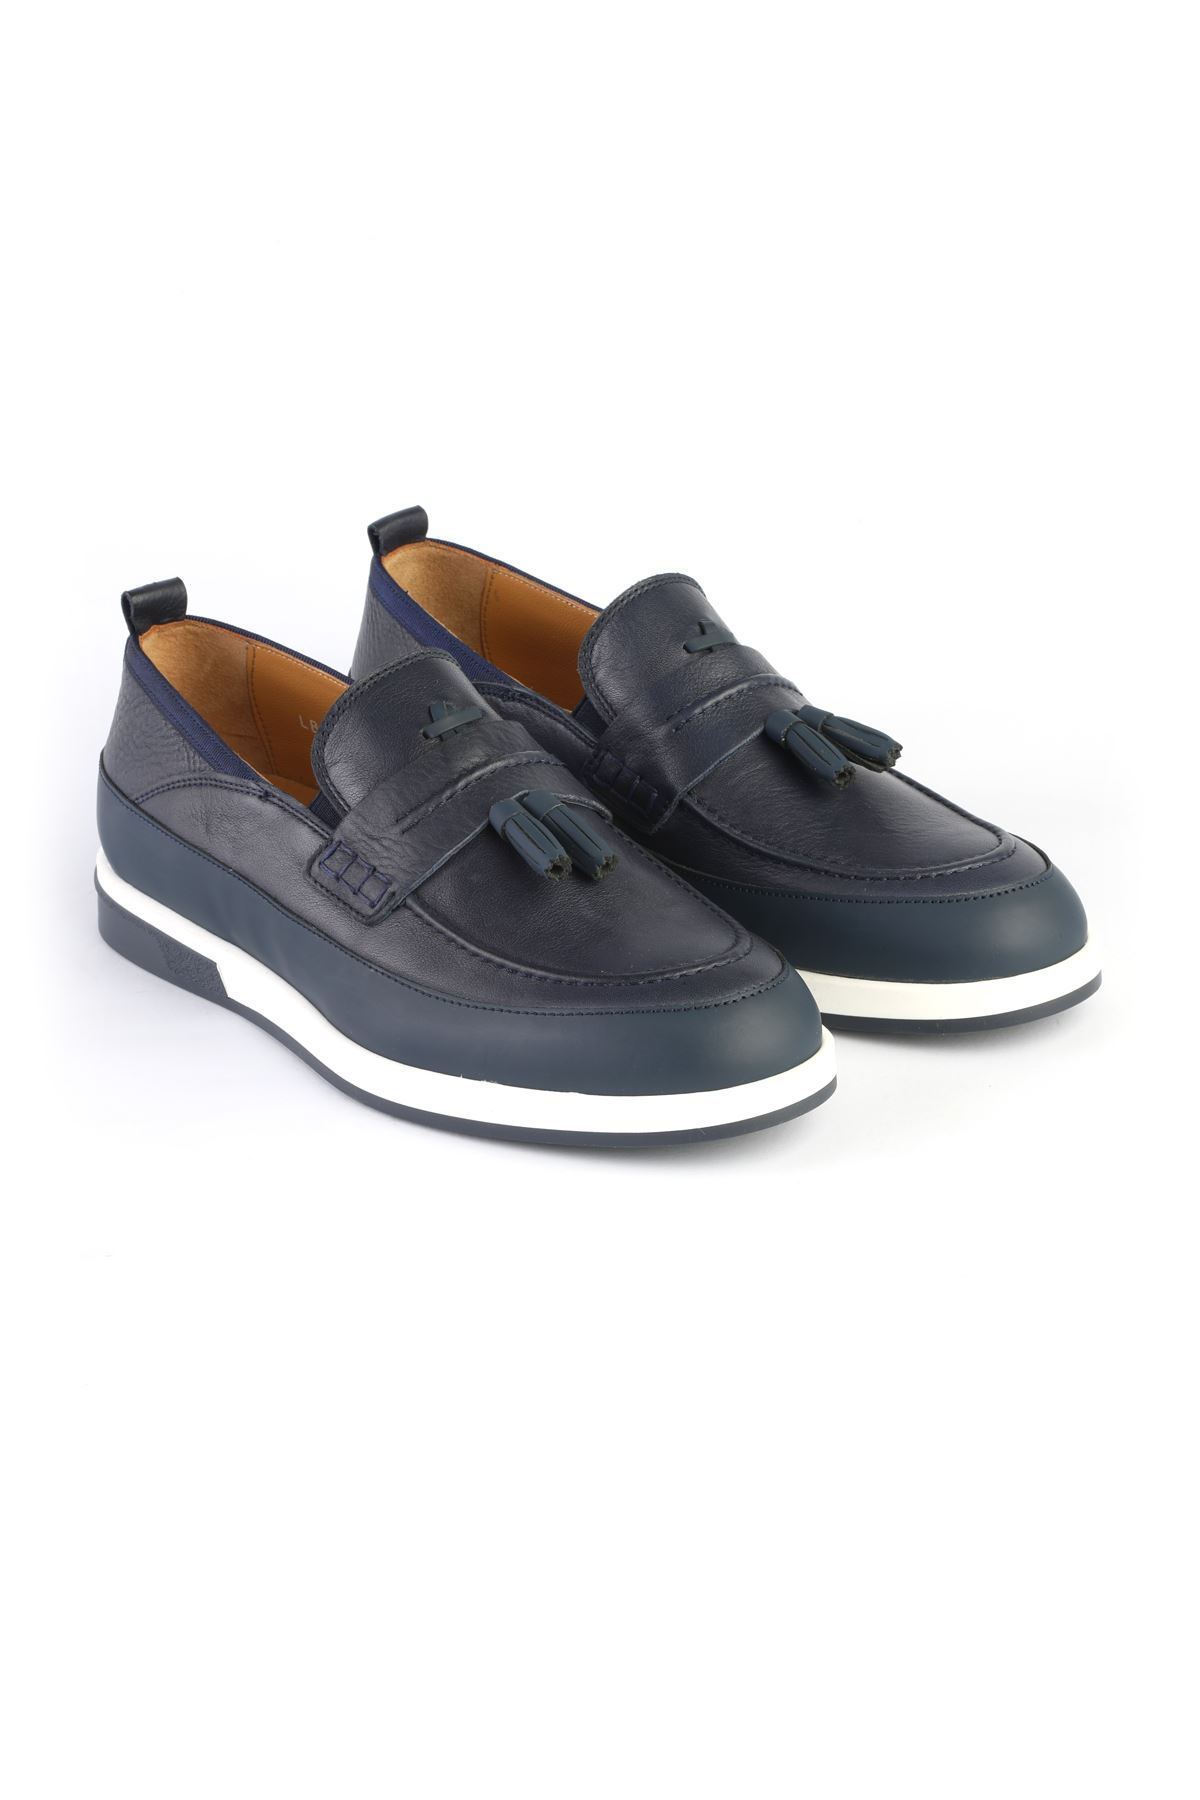 Libero 3366 Navy Blue Loafers